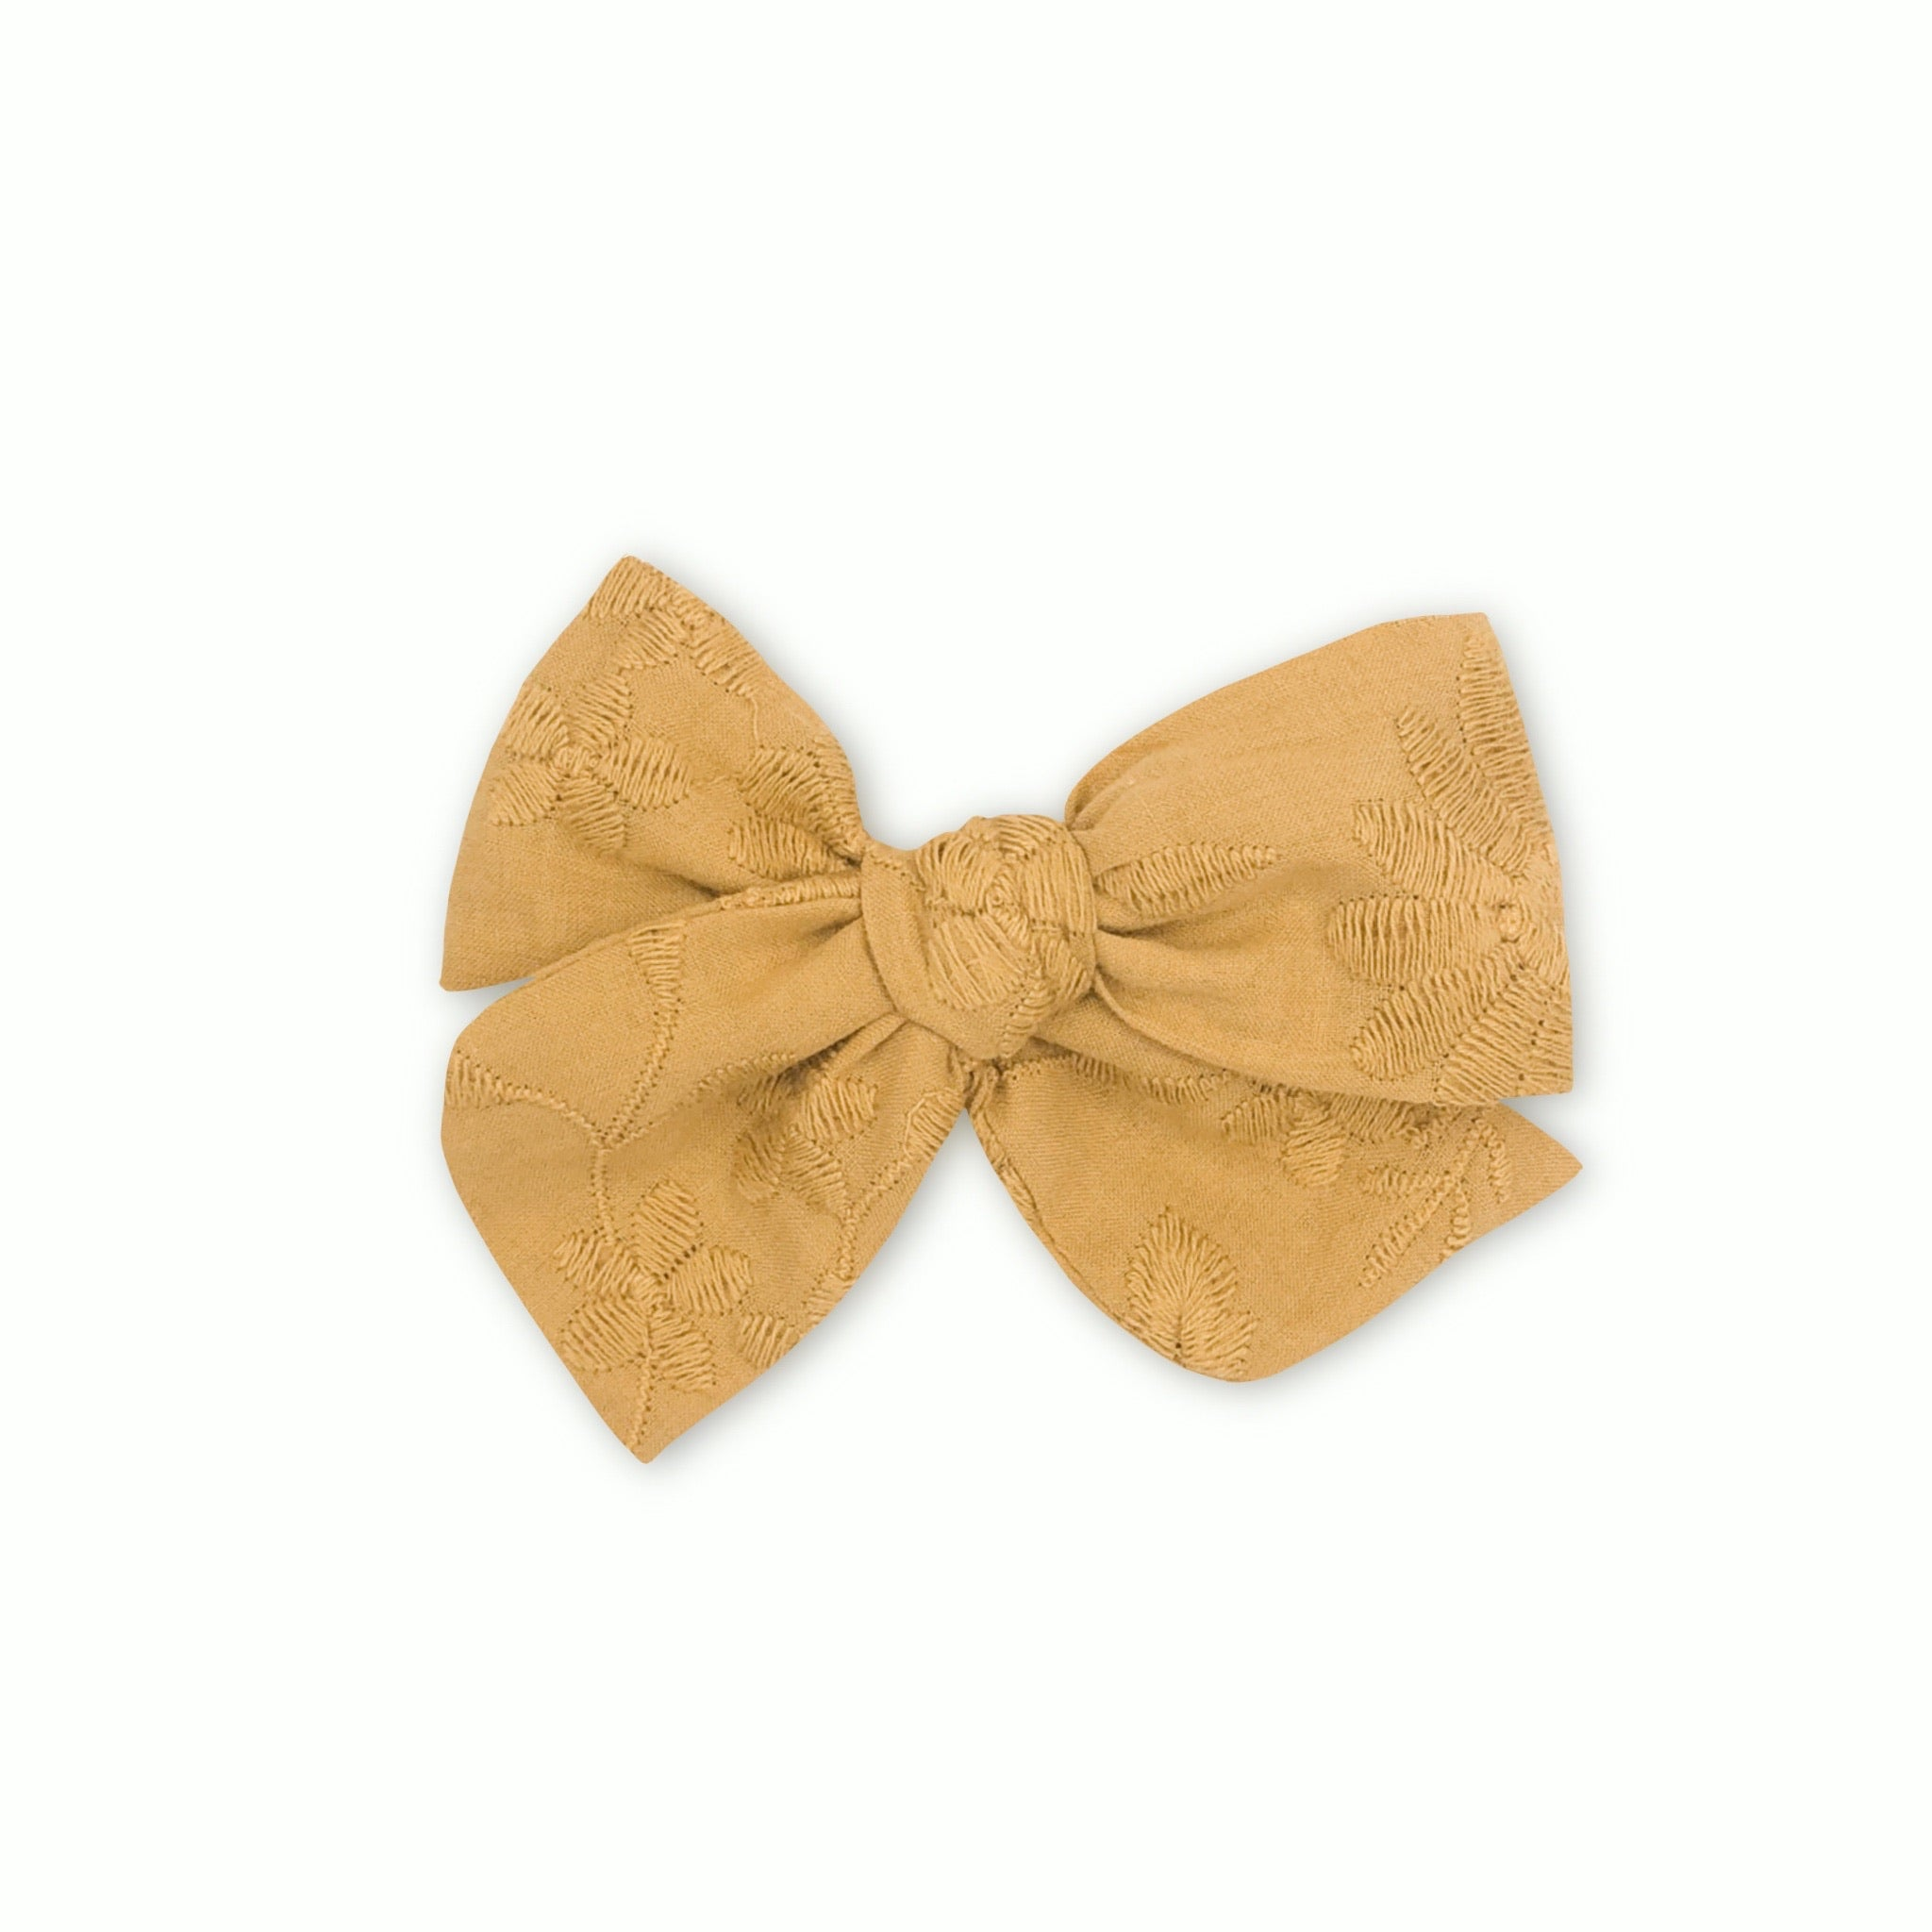 Ochre Embroidered Pinwheel Bow